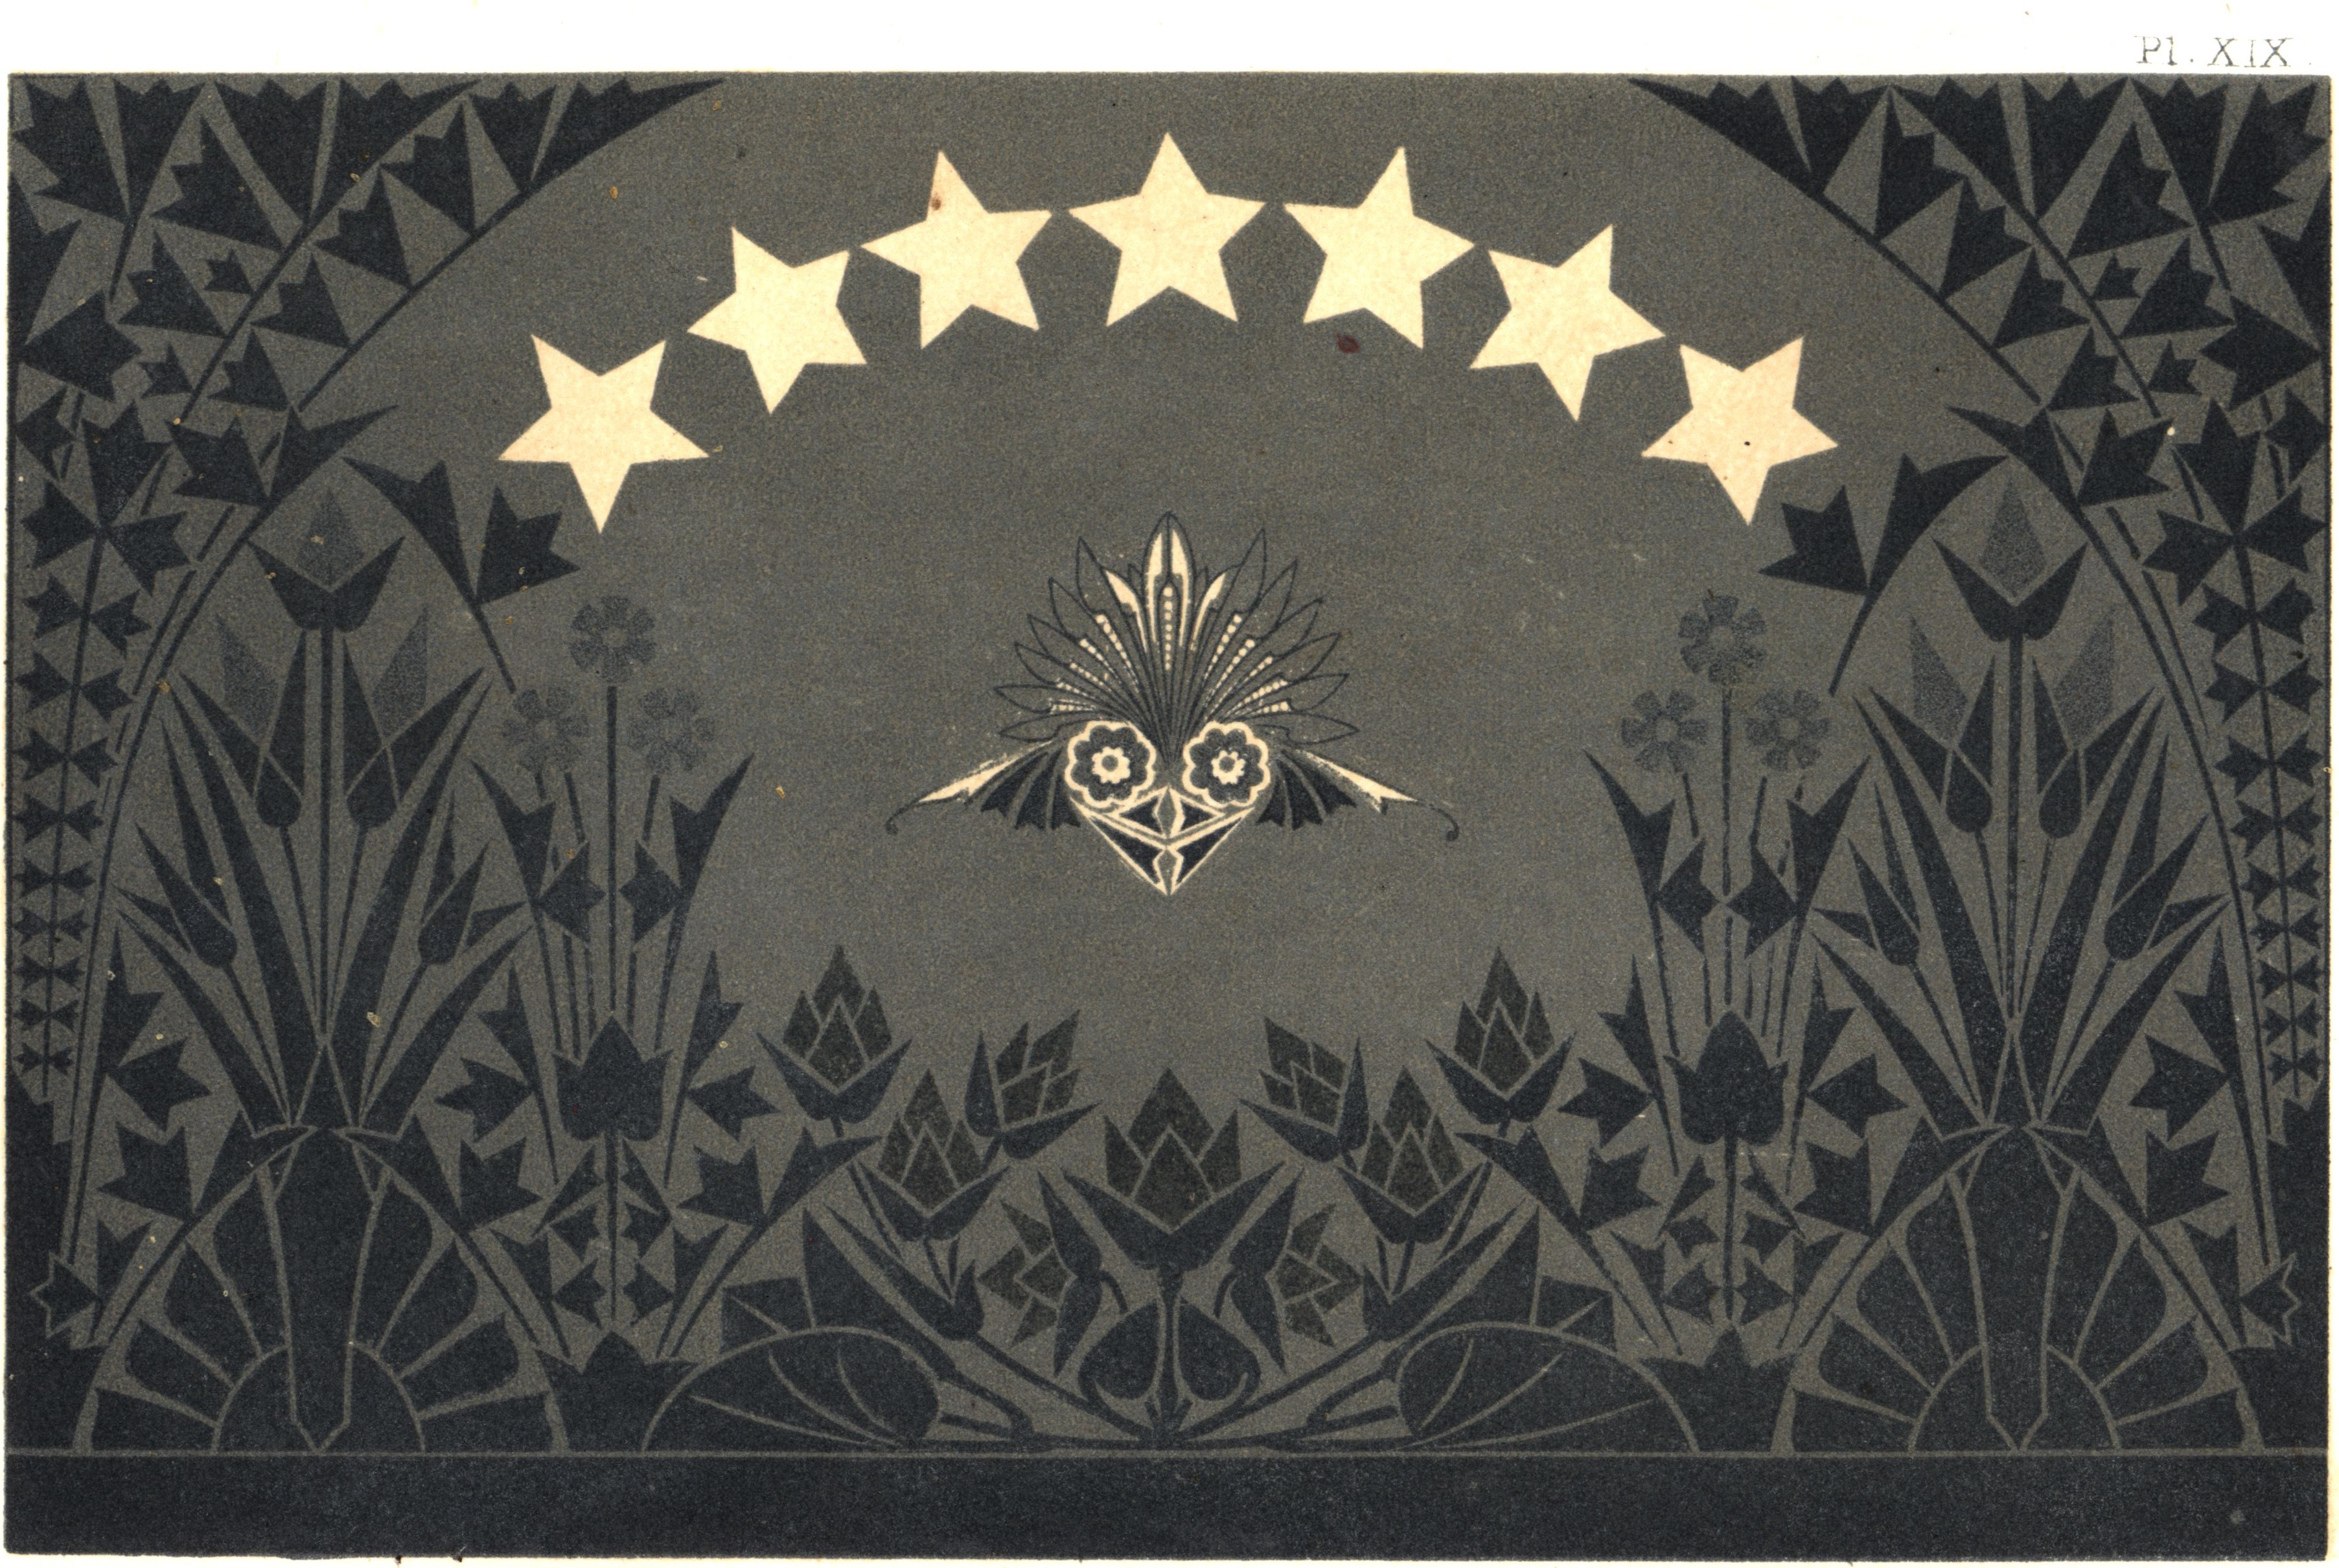 """Figure 13. Dresser, """"Evening"""" wallpaper pattern. Plate XVI from _The Art of Decorative Design_. Courtesyof the Department of Special Collections, Stanford University Libraries."""